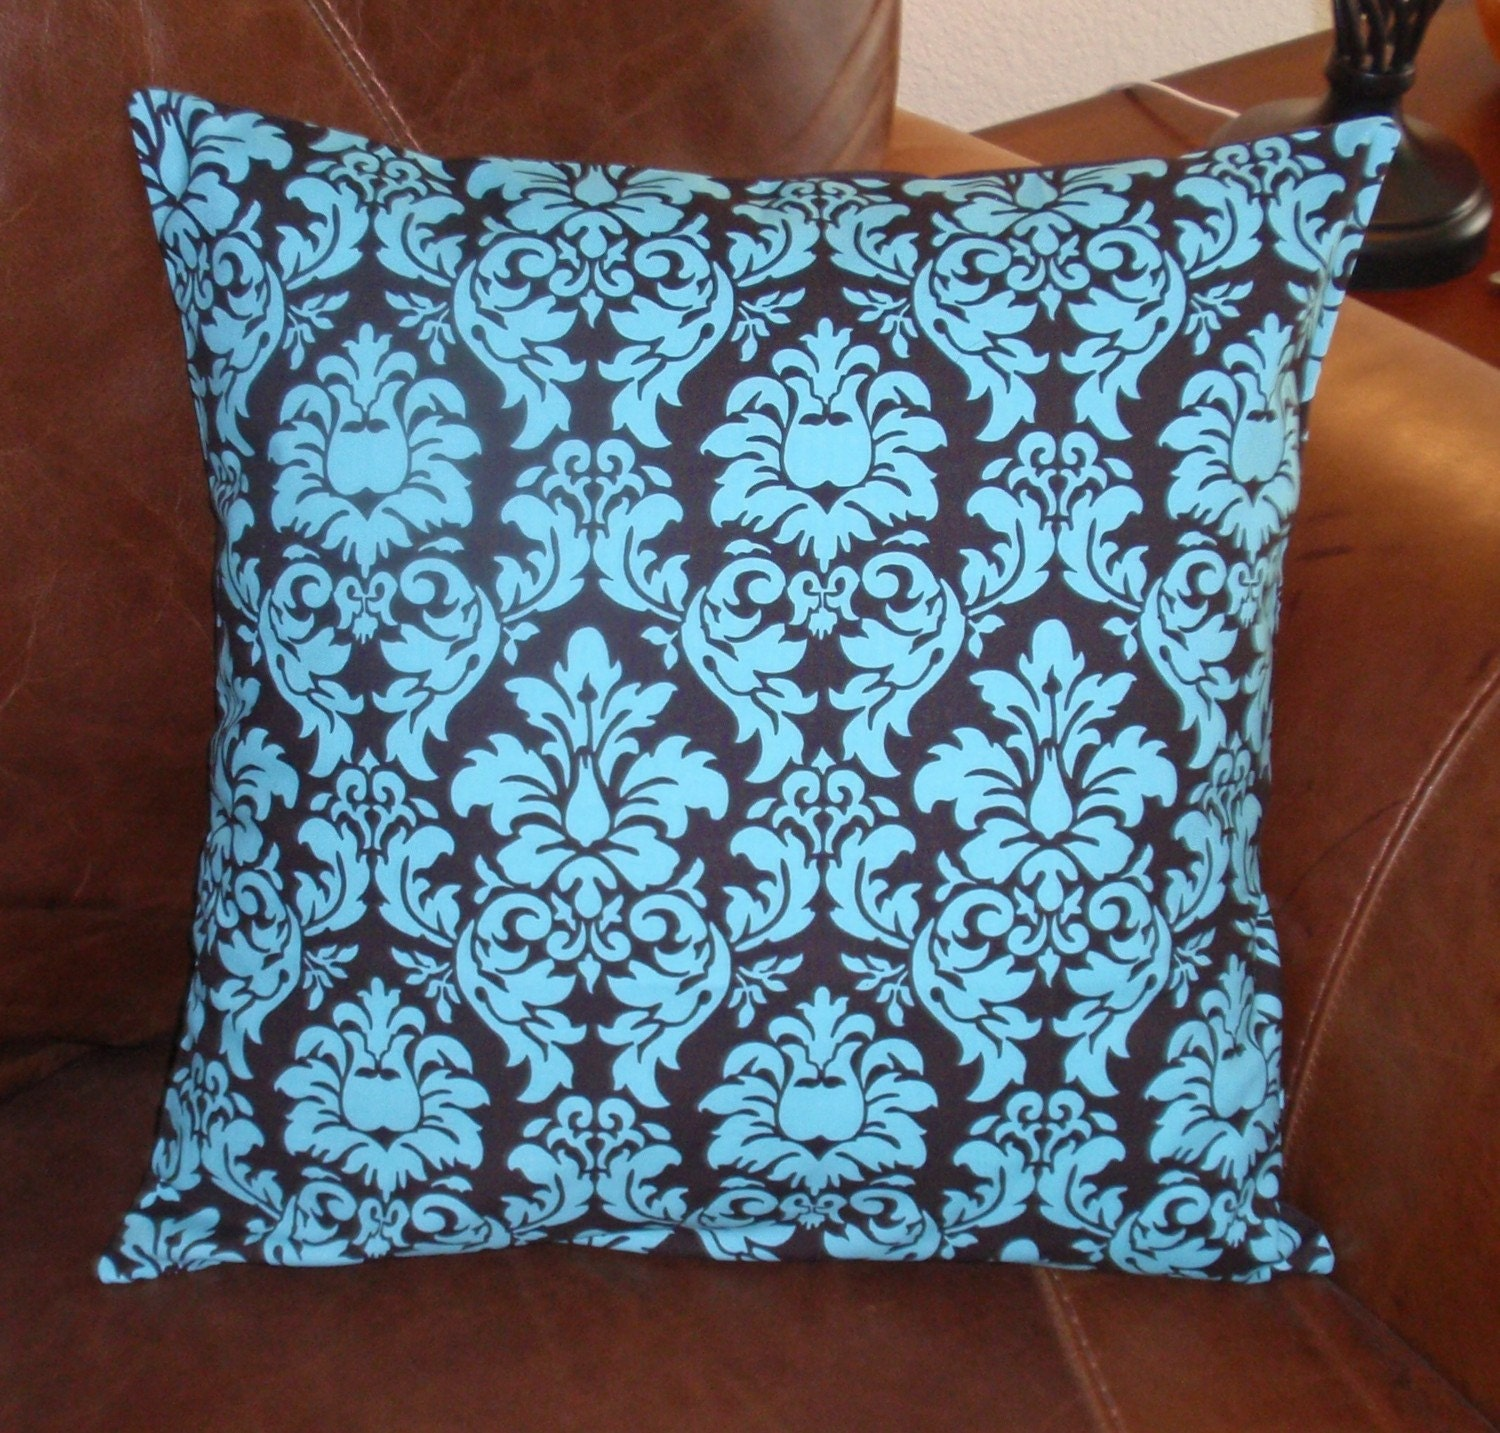 Throw Pillow 16x16 Removable cover sewn with Michael Miller's Dandy Damask in Spa - Turquoise and Brown